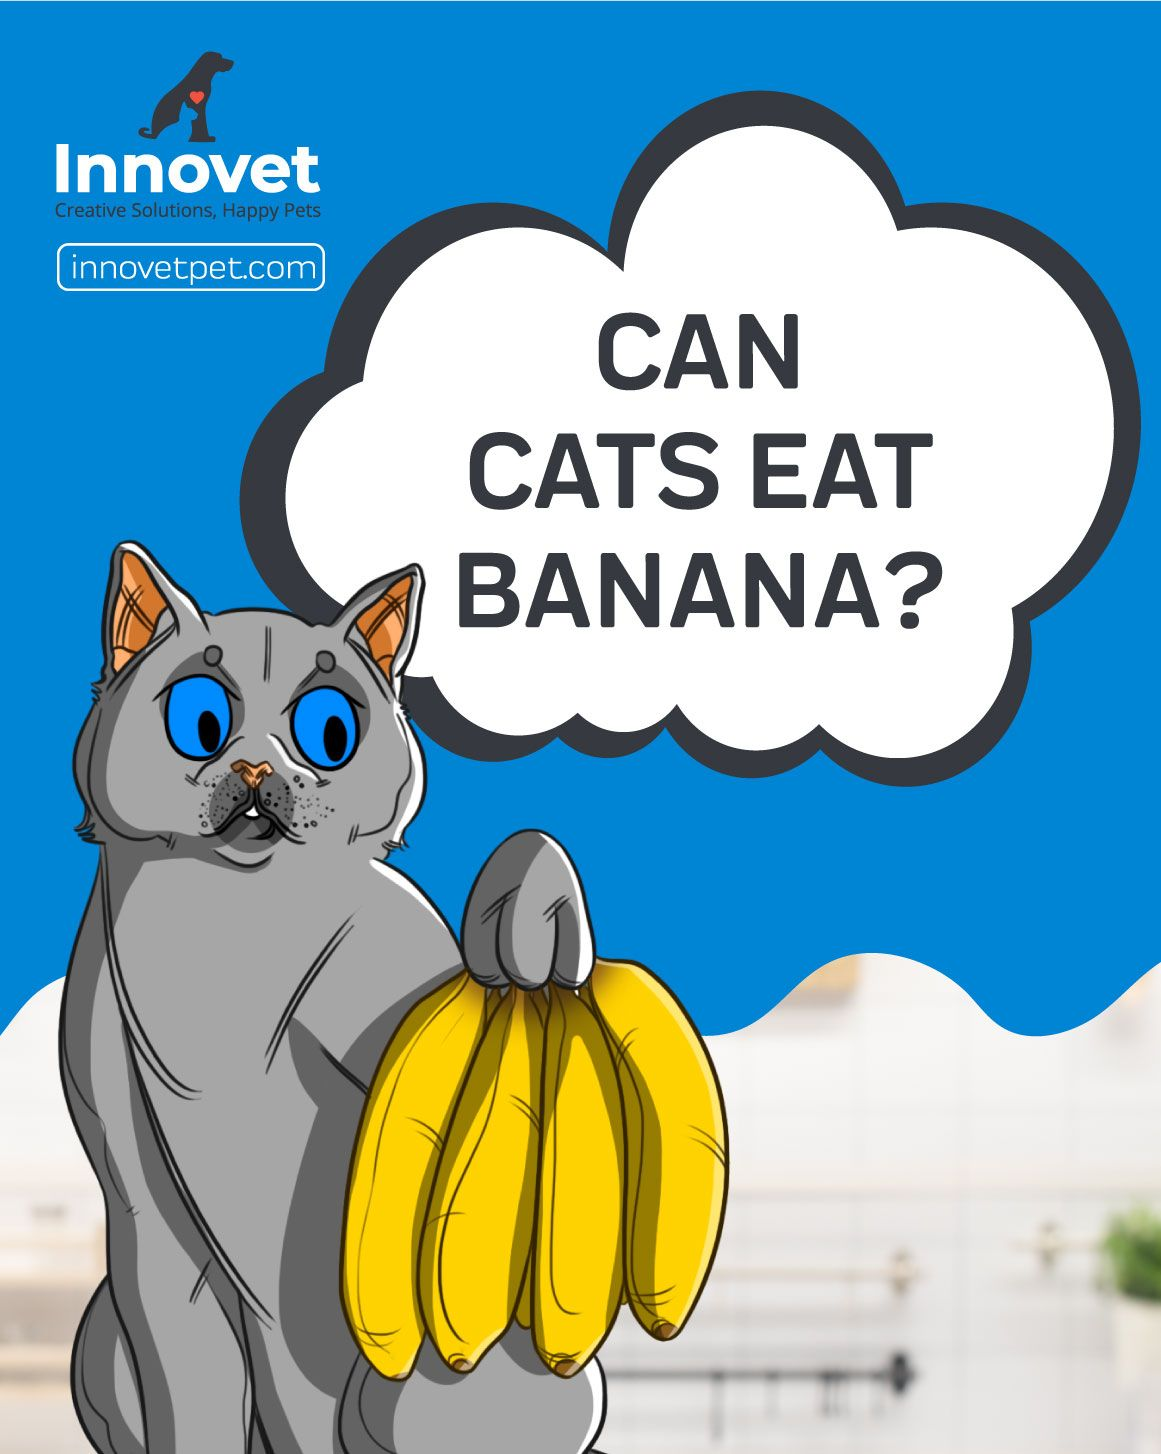 Can Cats Eat Bananas? (With images) Banana, Fruit